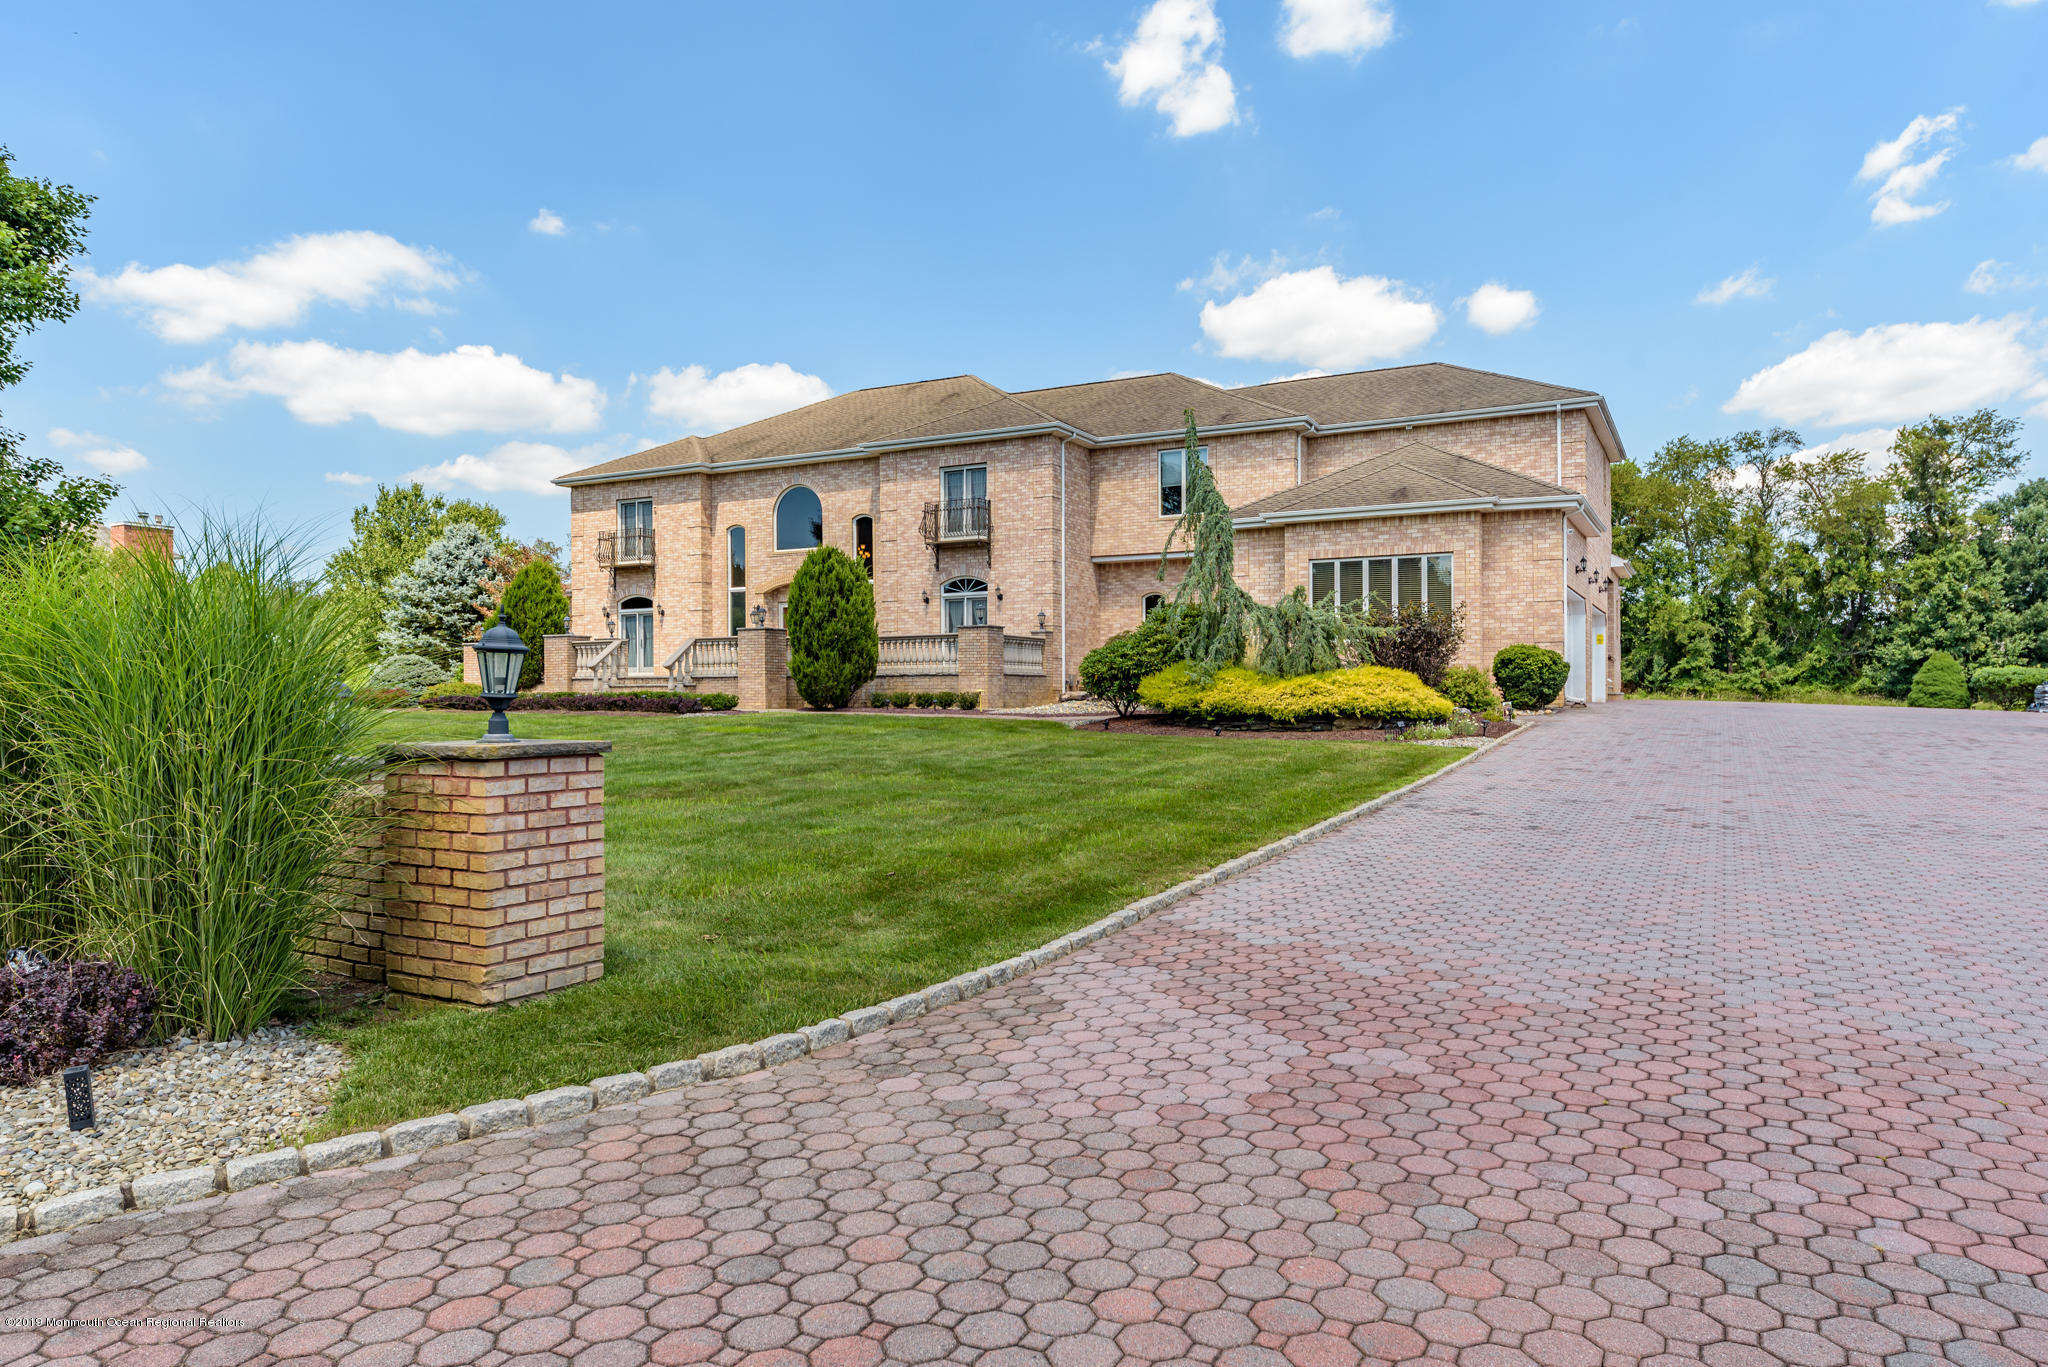 Luxury Homes for sale in MILLSTONE, NJ | MILLSTONE MLS